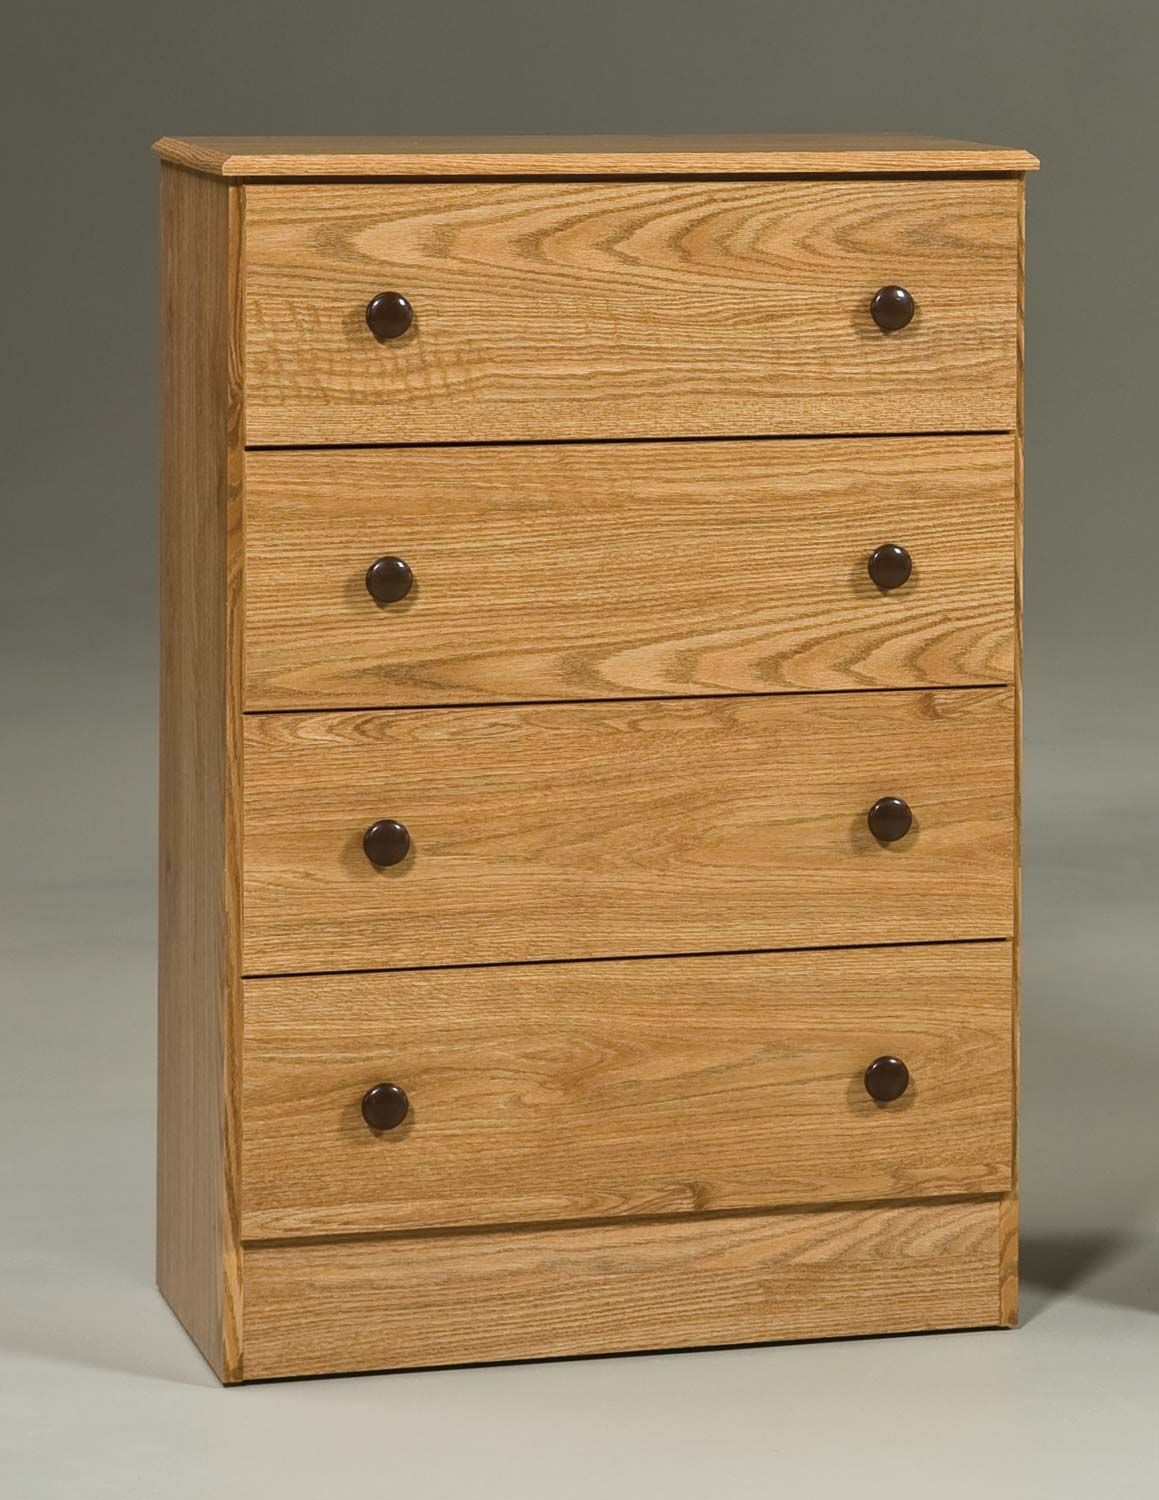 Kith Furniture Factory Select 4 Drawer Chest